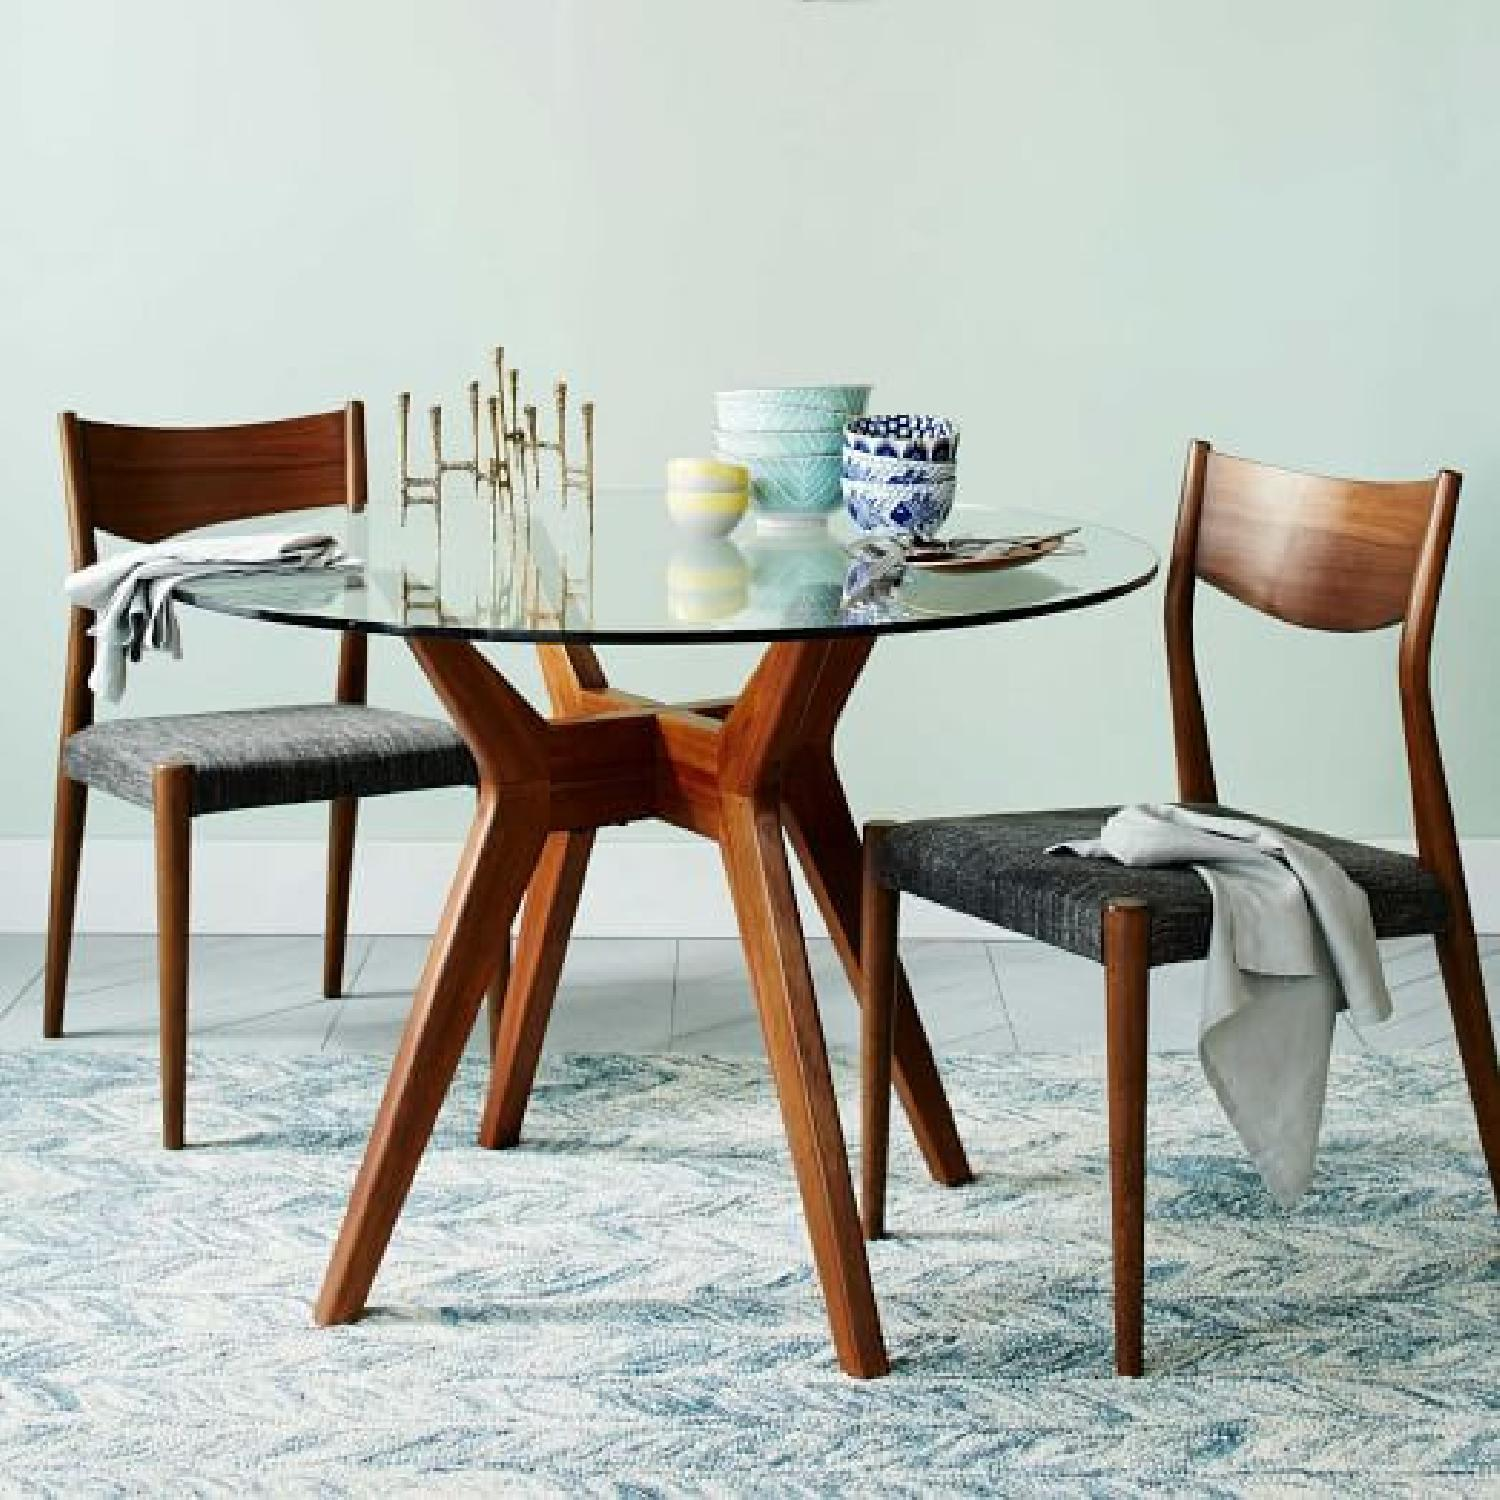 West Elm Classic Cafe Walnut Counter Stool - image-1